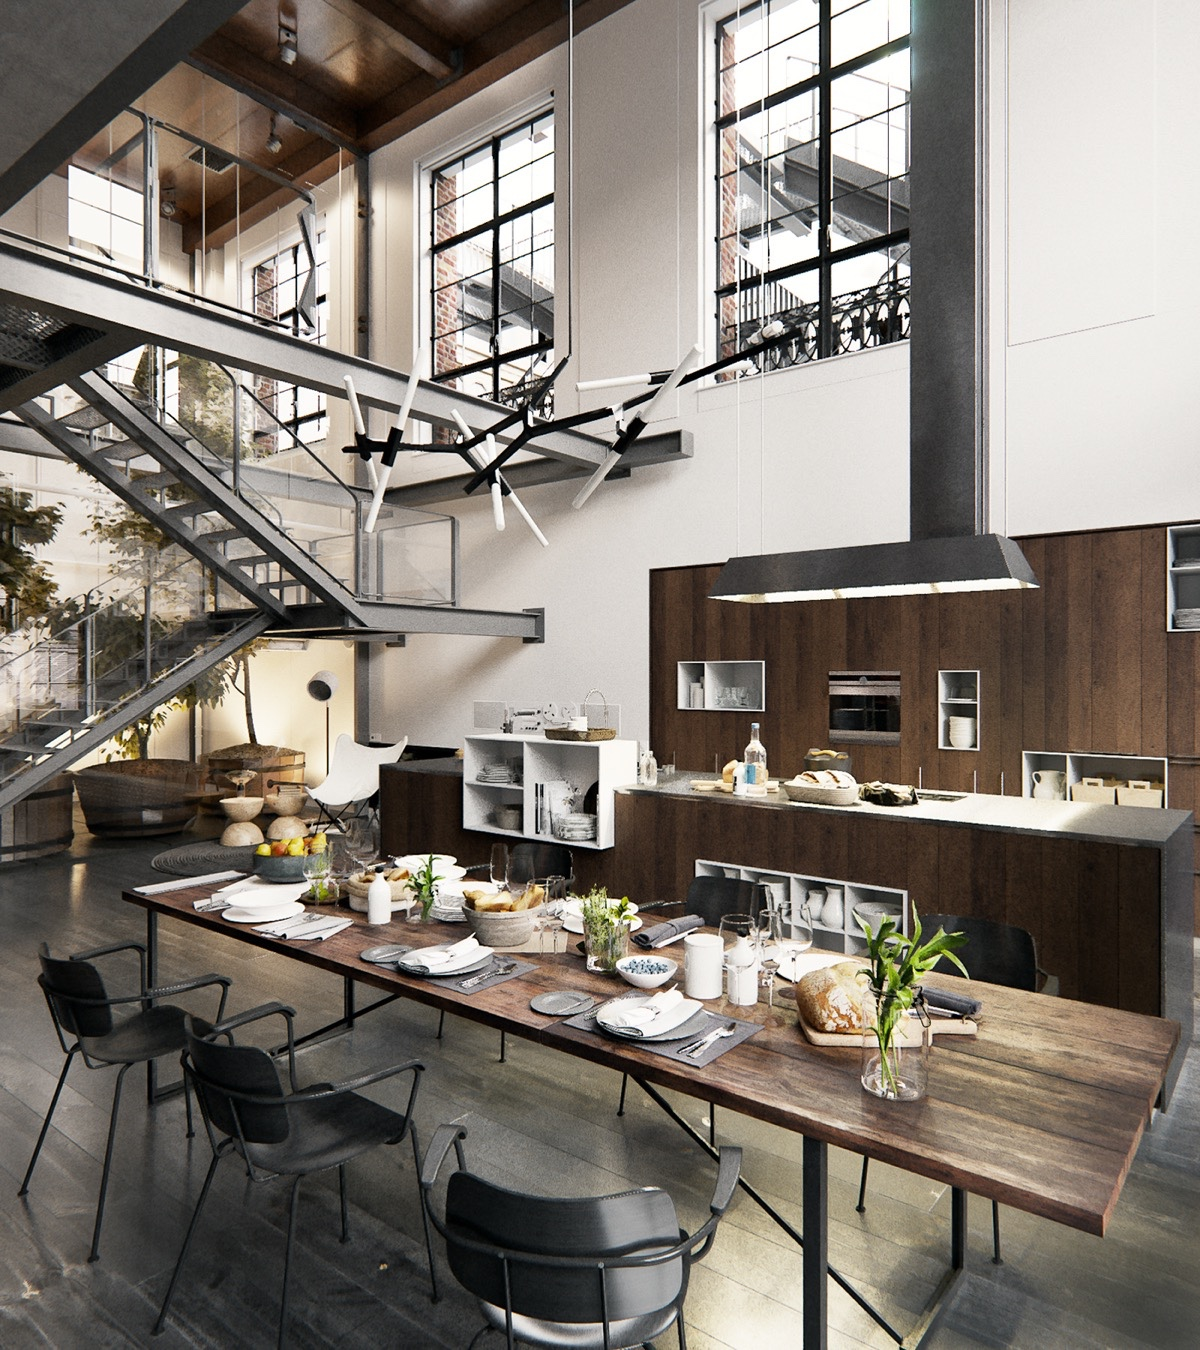 New York Loft Kitchen Design